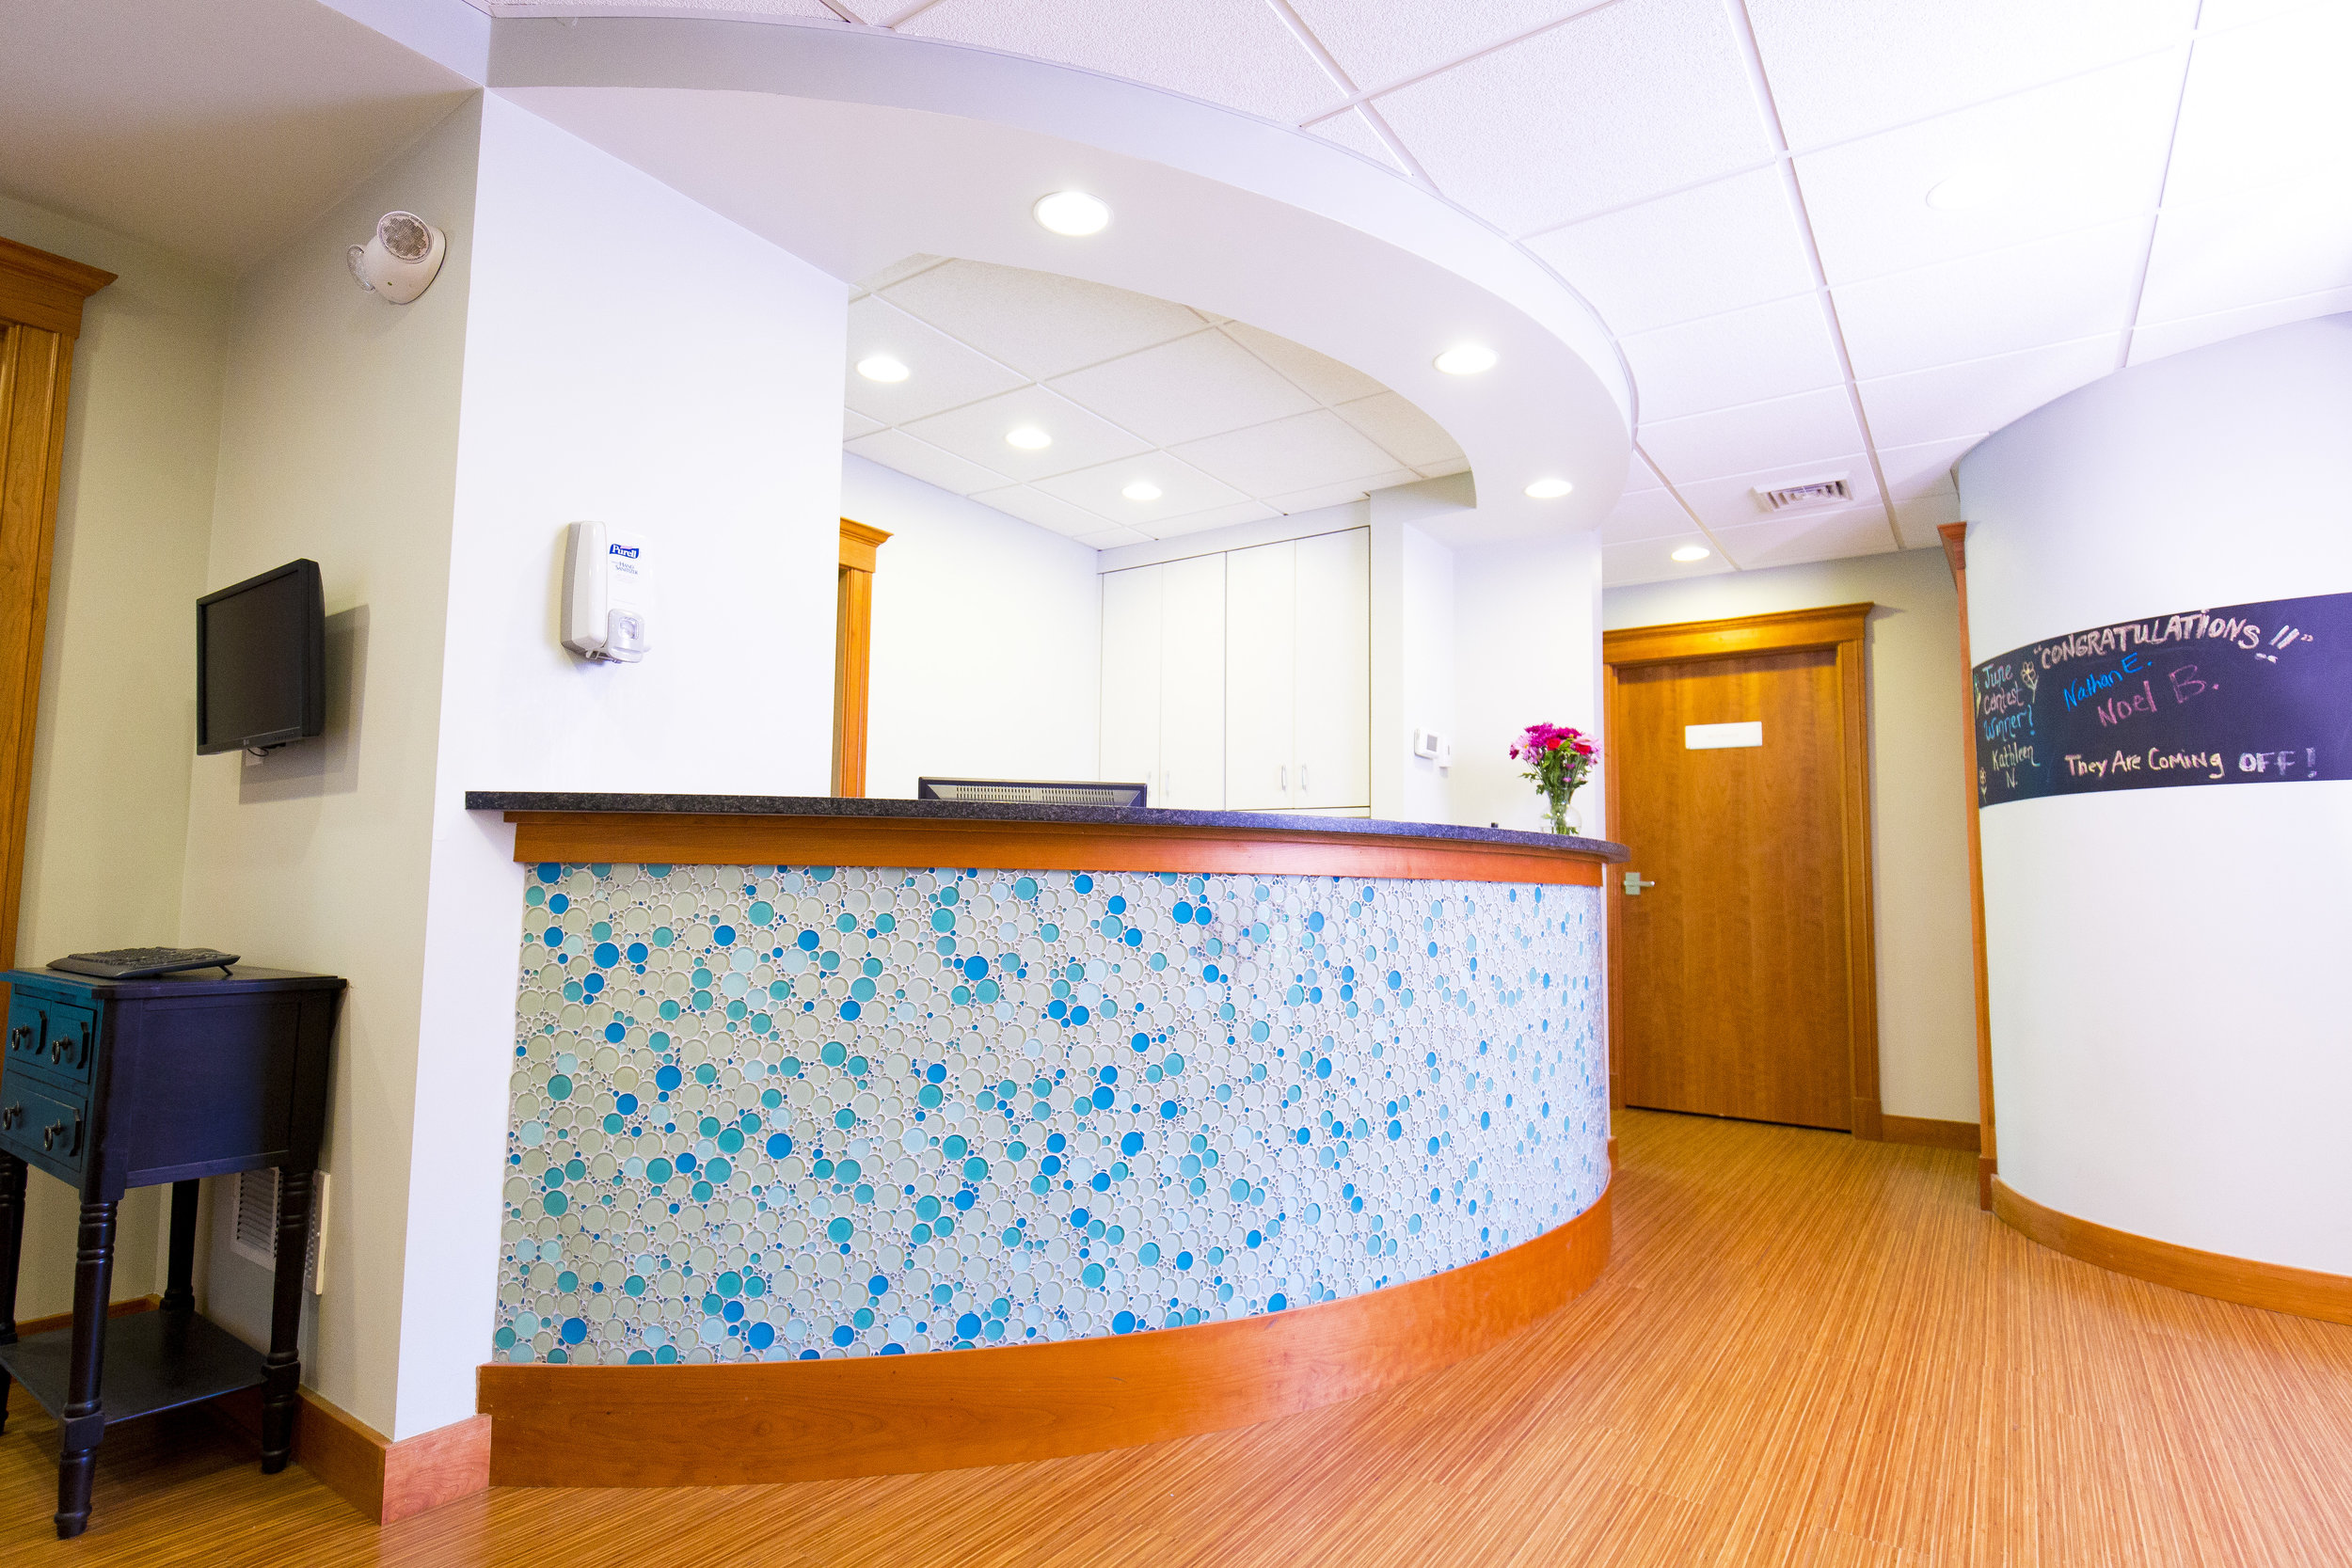 314A1764 Giovanni The Photographer-Boston Lorenz OrthodonticsCorporate Dental Dentist Orthodontics Headquarter  Lorenz Orthodontics.jpg